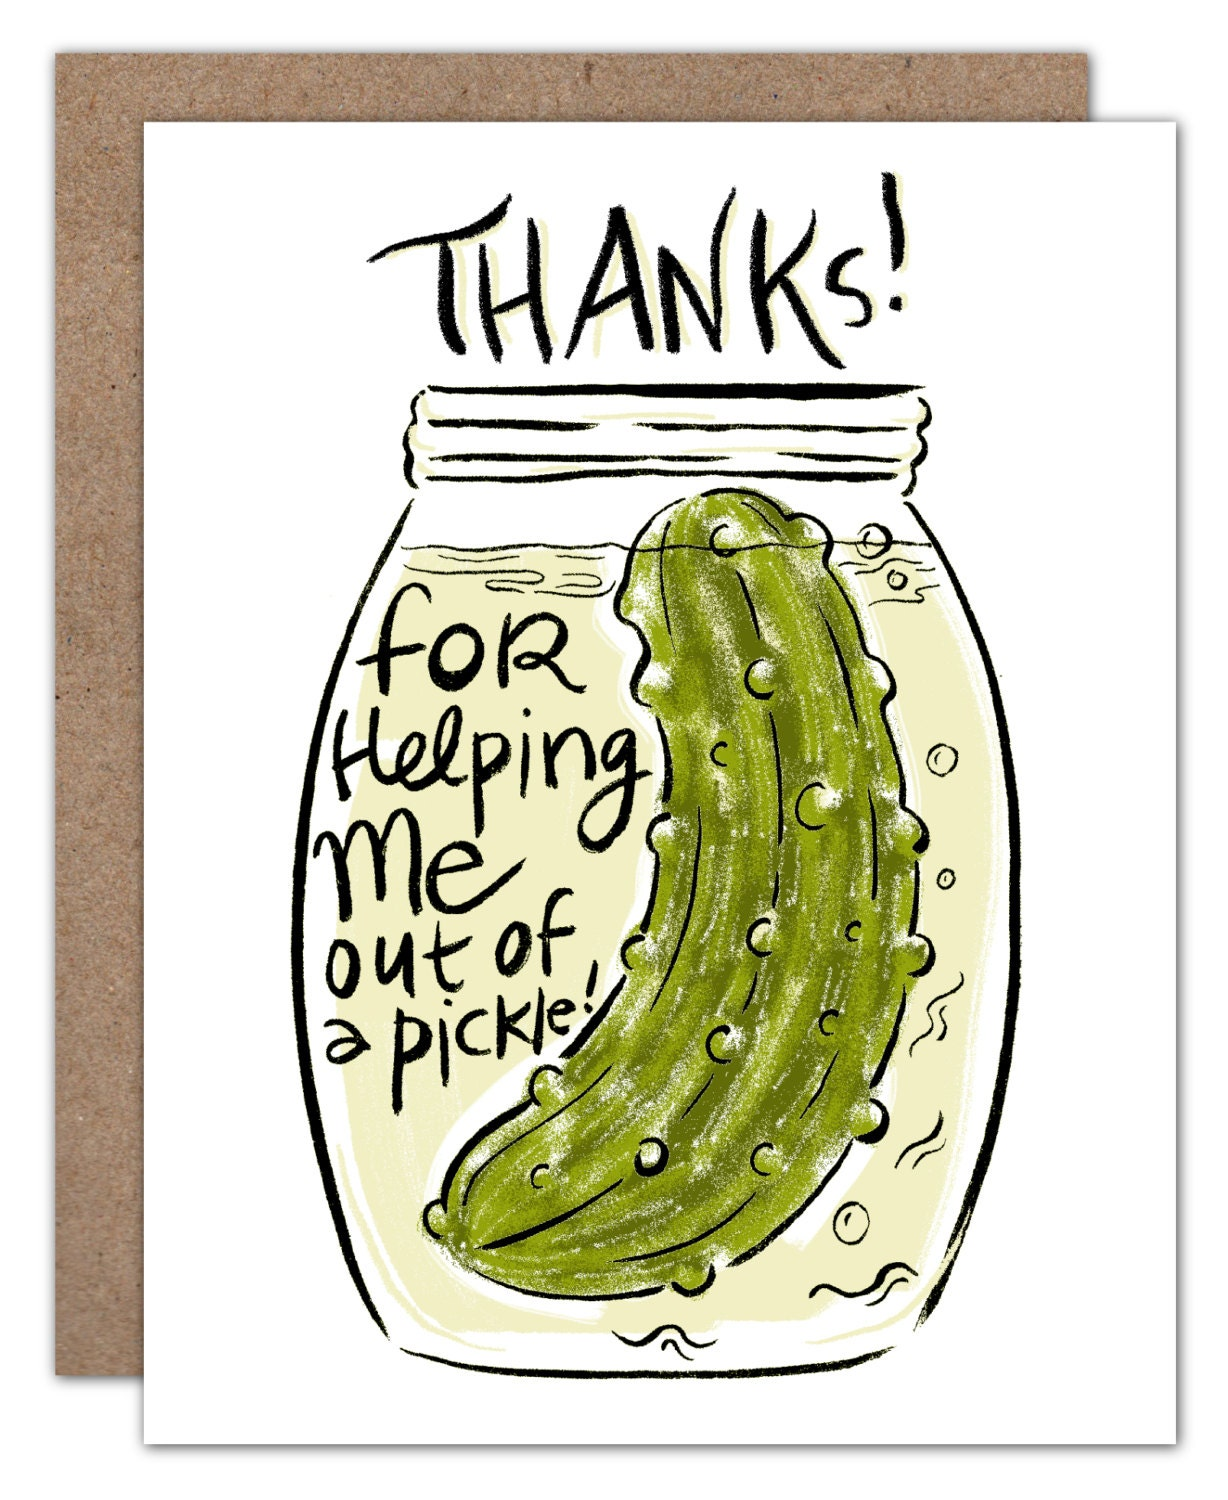 Thanks For Getting Me Out Of A Pickle Thank You Card.